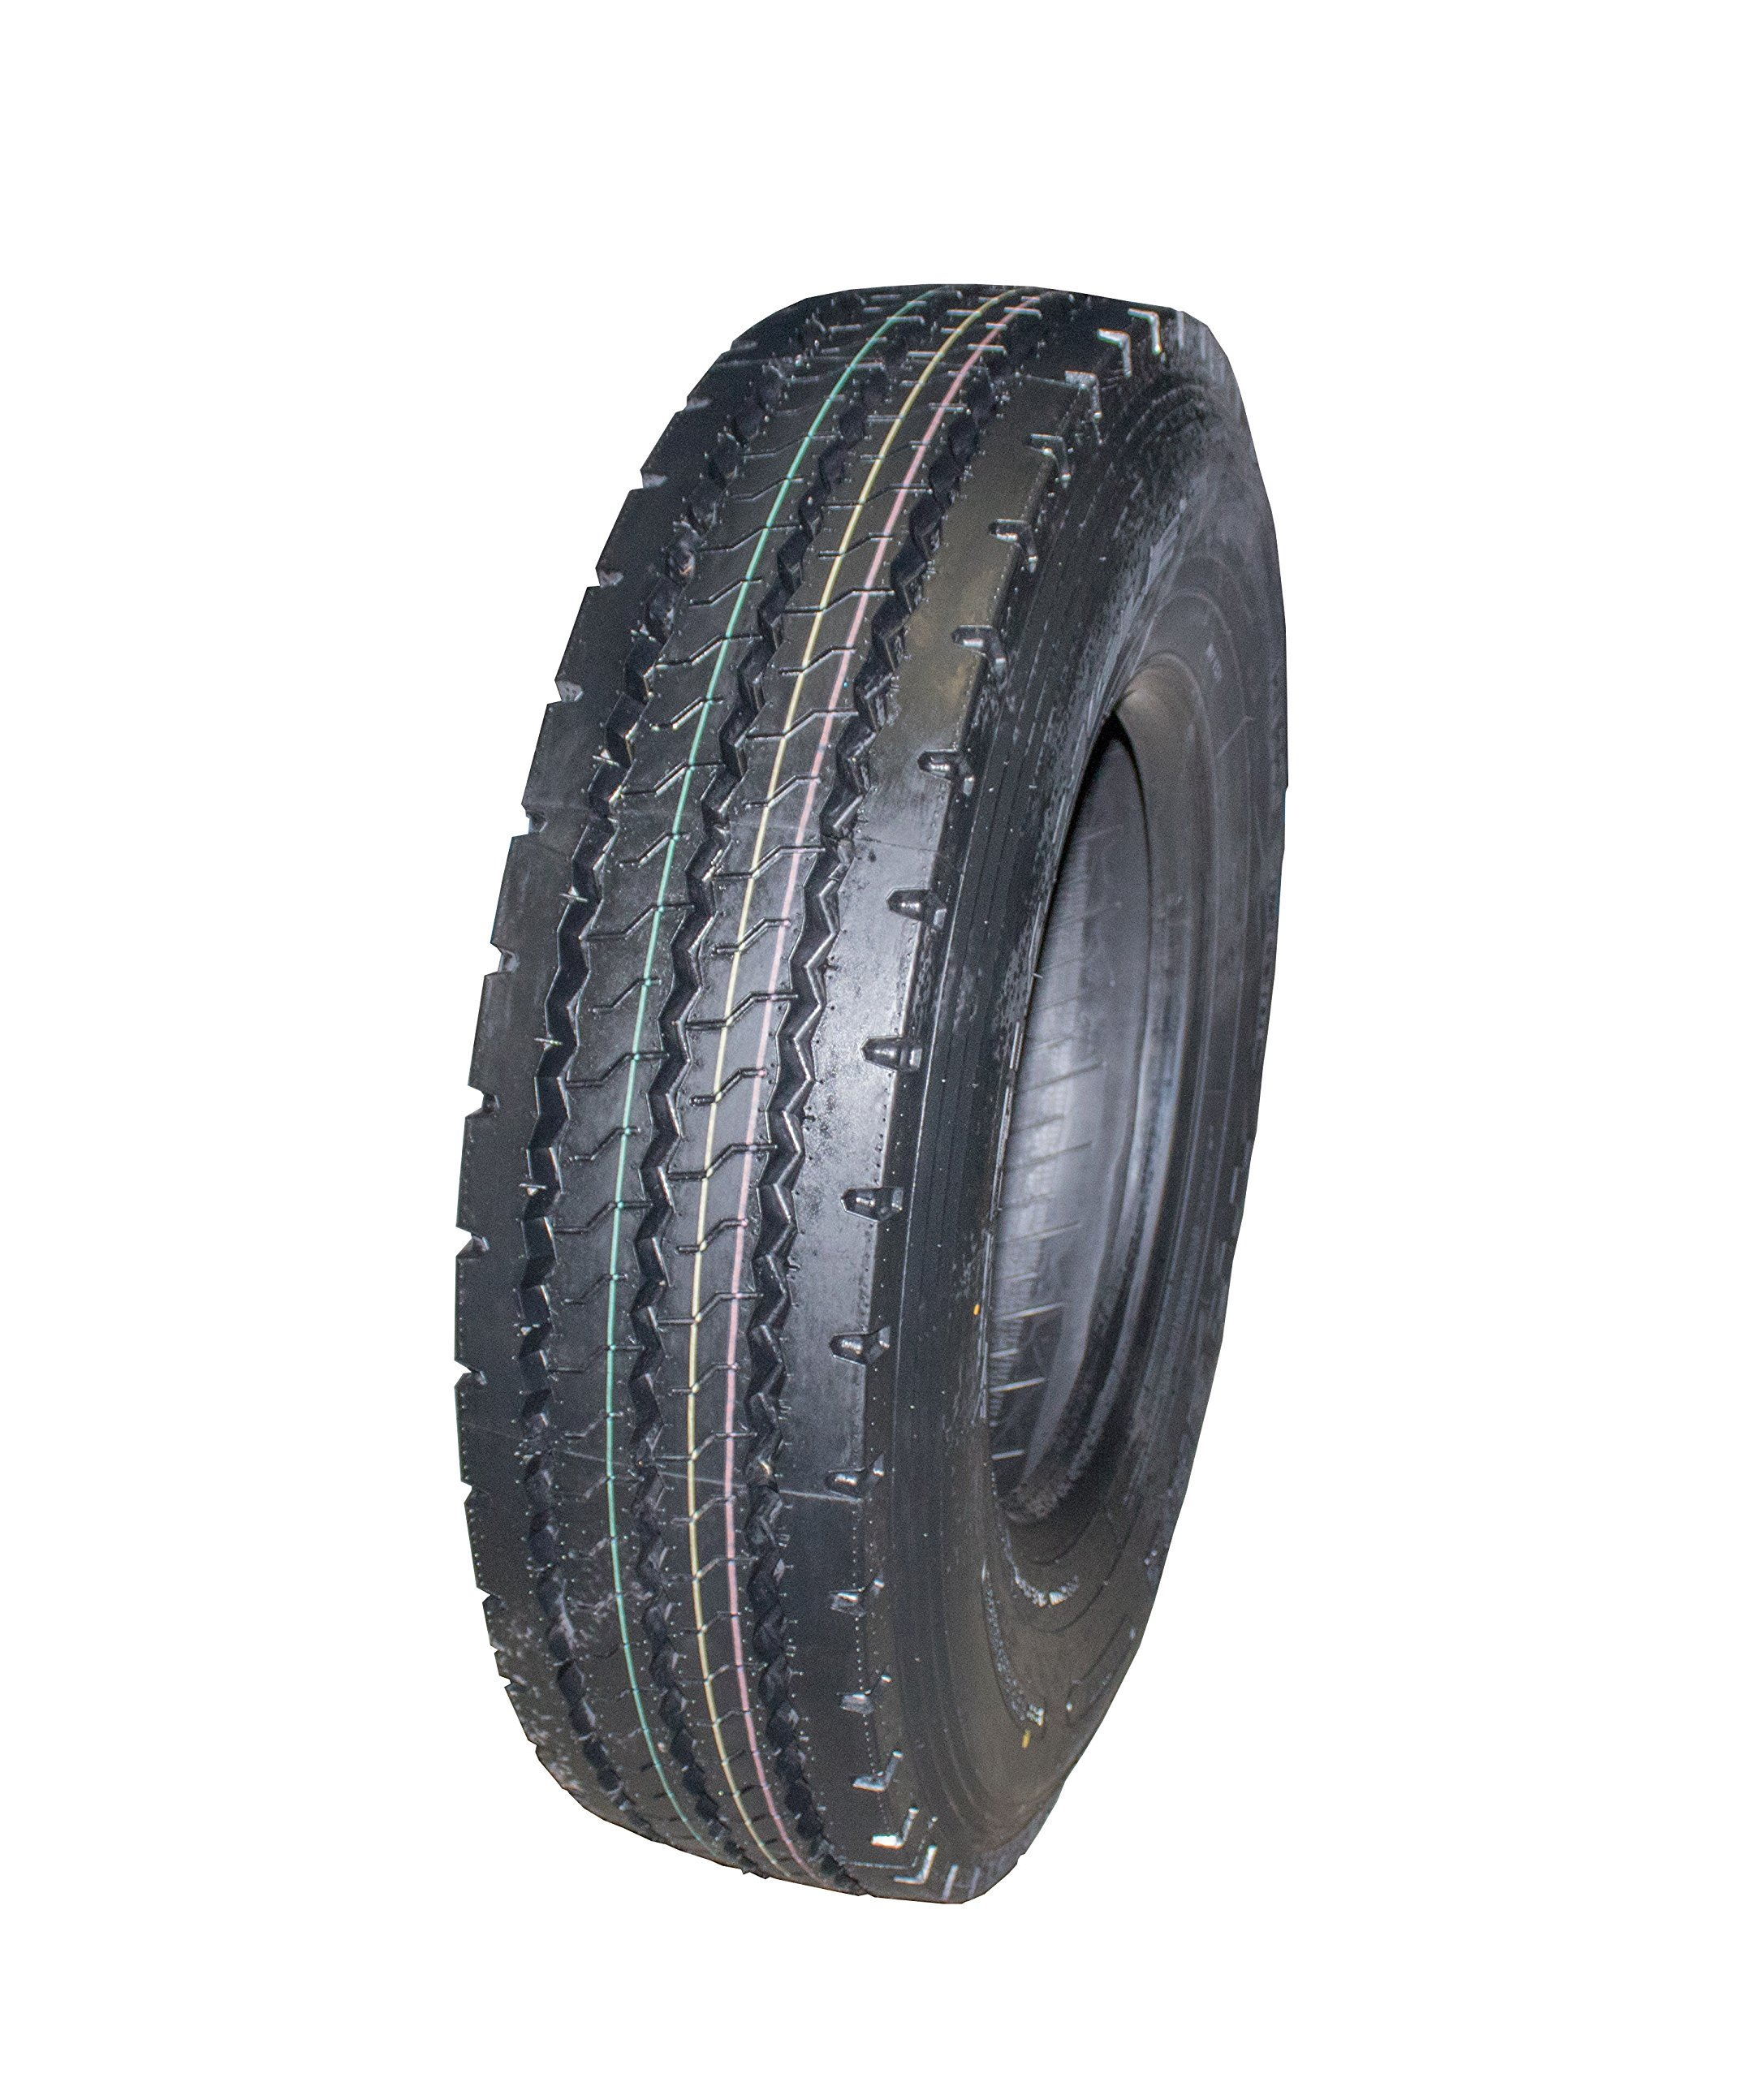 TRIANGLE TR880 -ALL POSITION - 12R22.5 16PLY (18/32) (Set of 8)